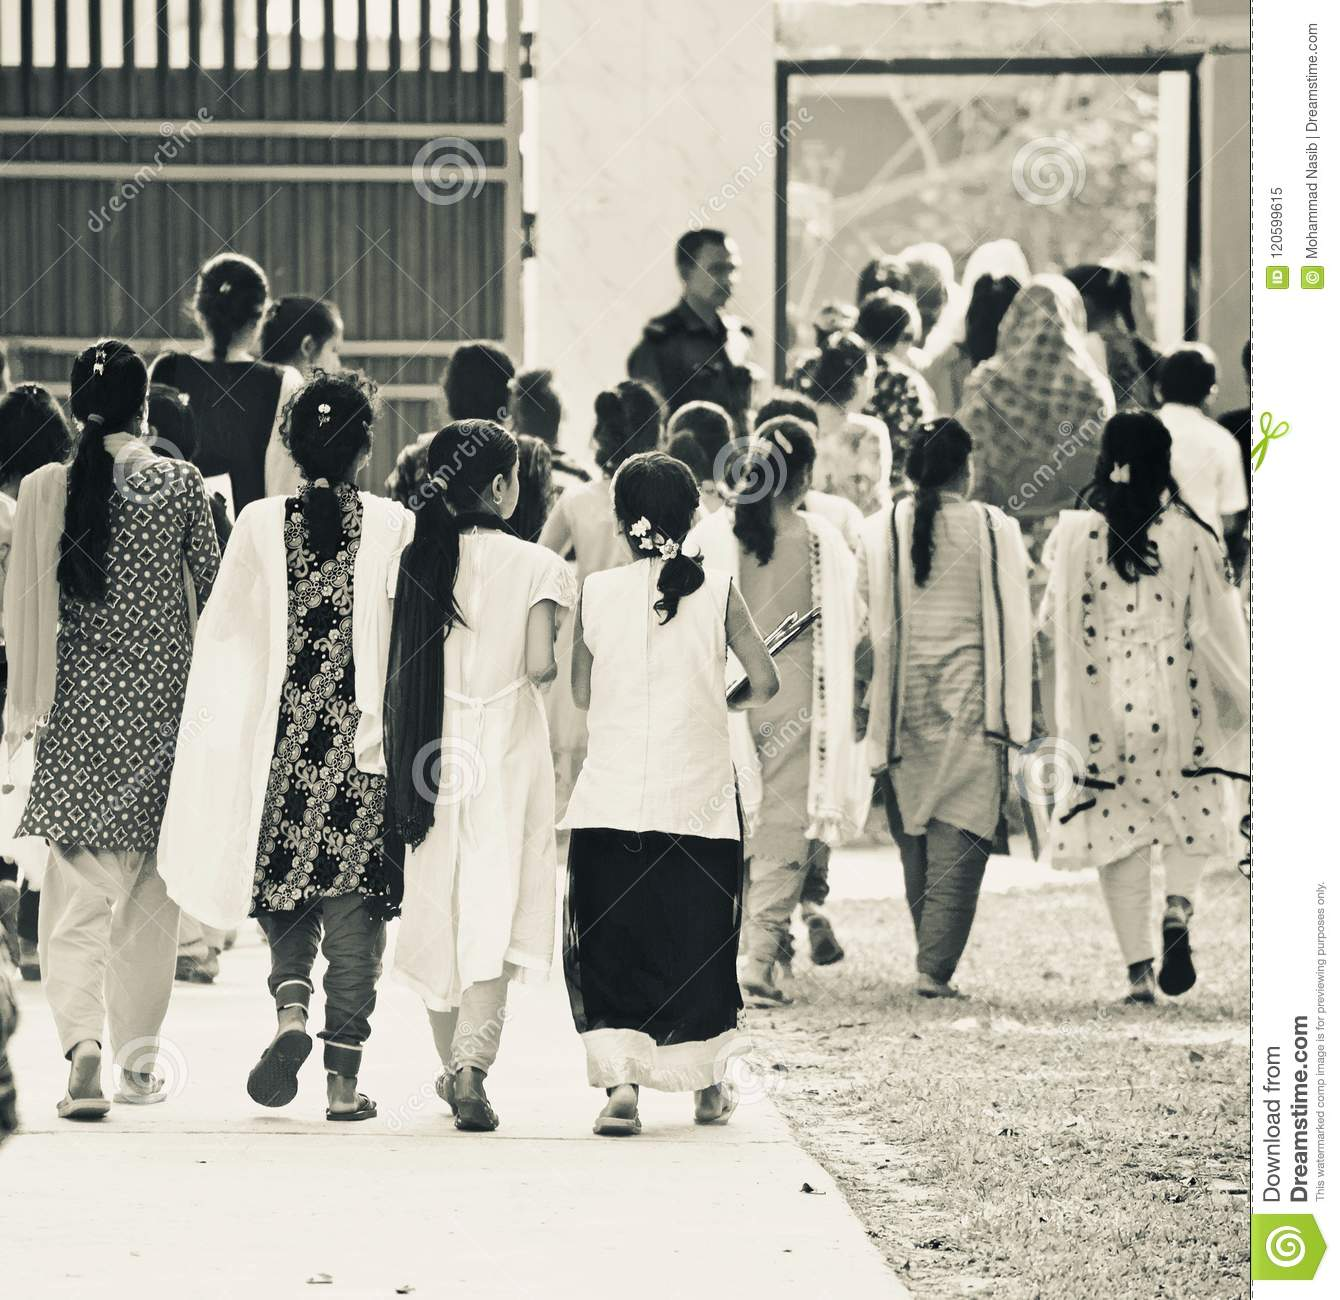 Download Young Children Of Bangladesh Walking Together Finishing The Final Examination Unique Editorial Photo Editorial Image - Image of finishing, examination: 120599615